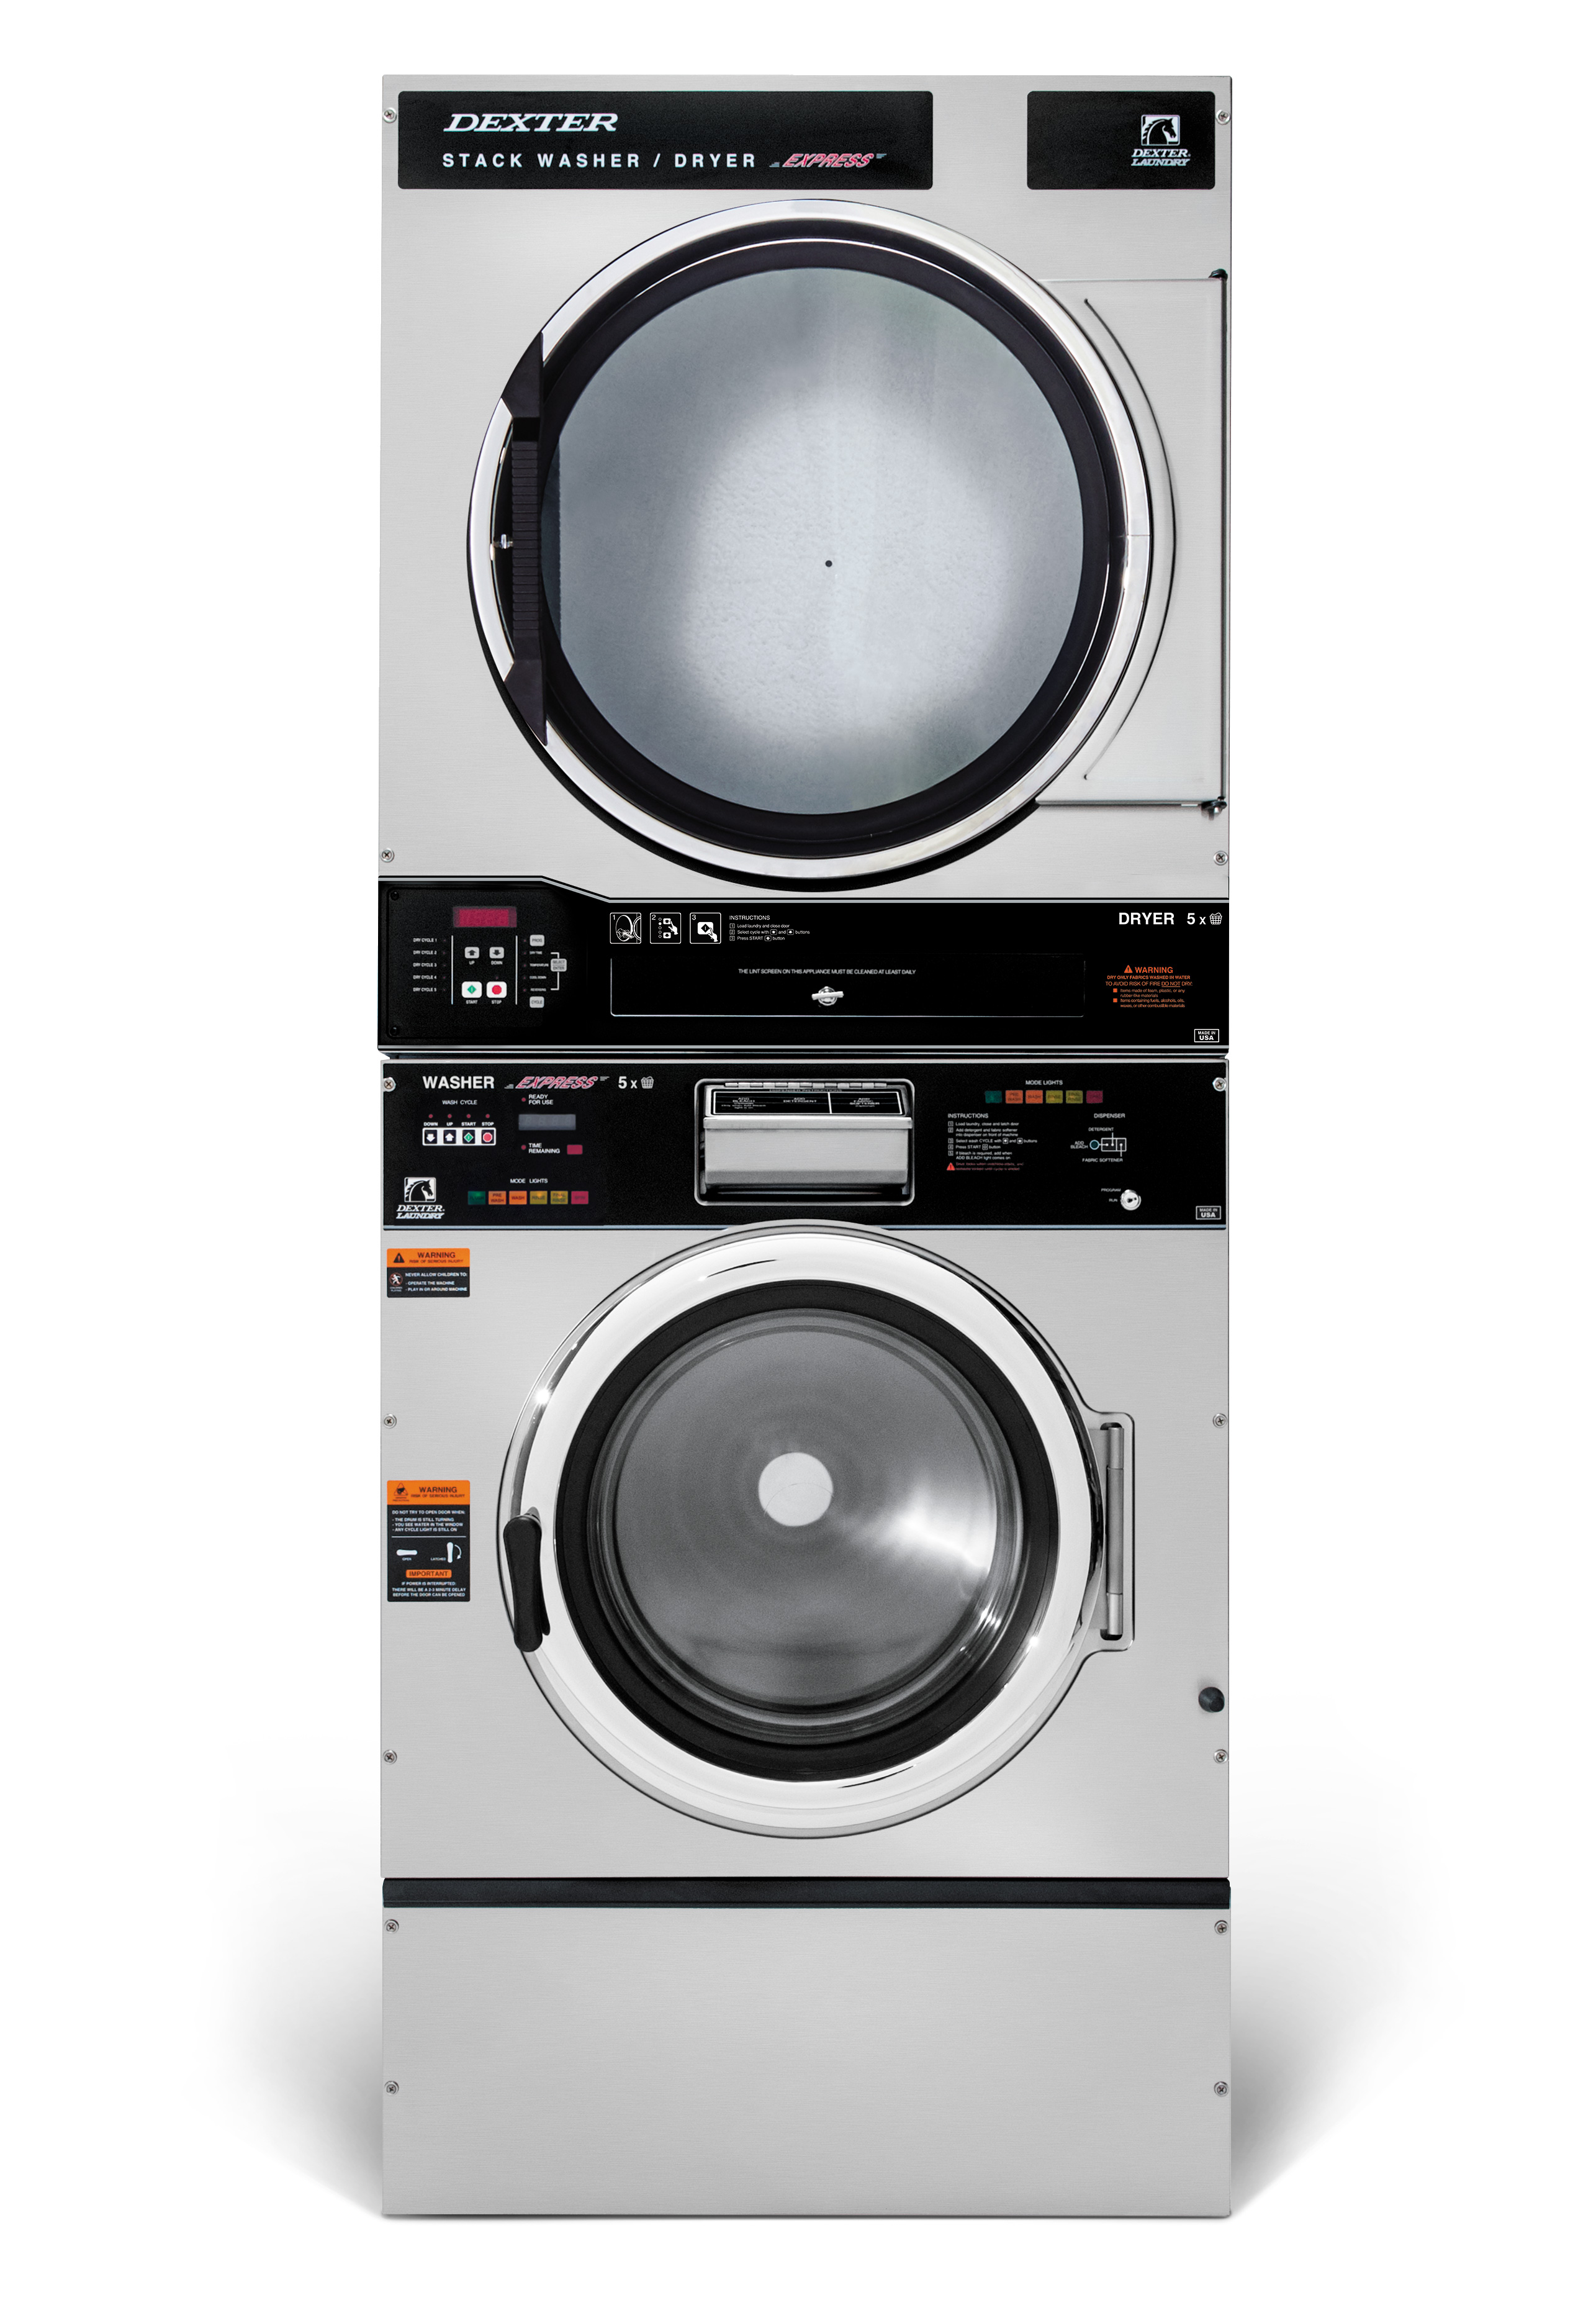 Dexter T-750 Stack Washer Dryer 6 Cycle Product Image